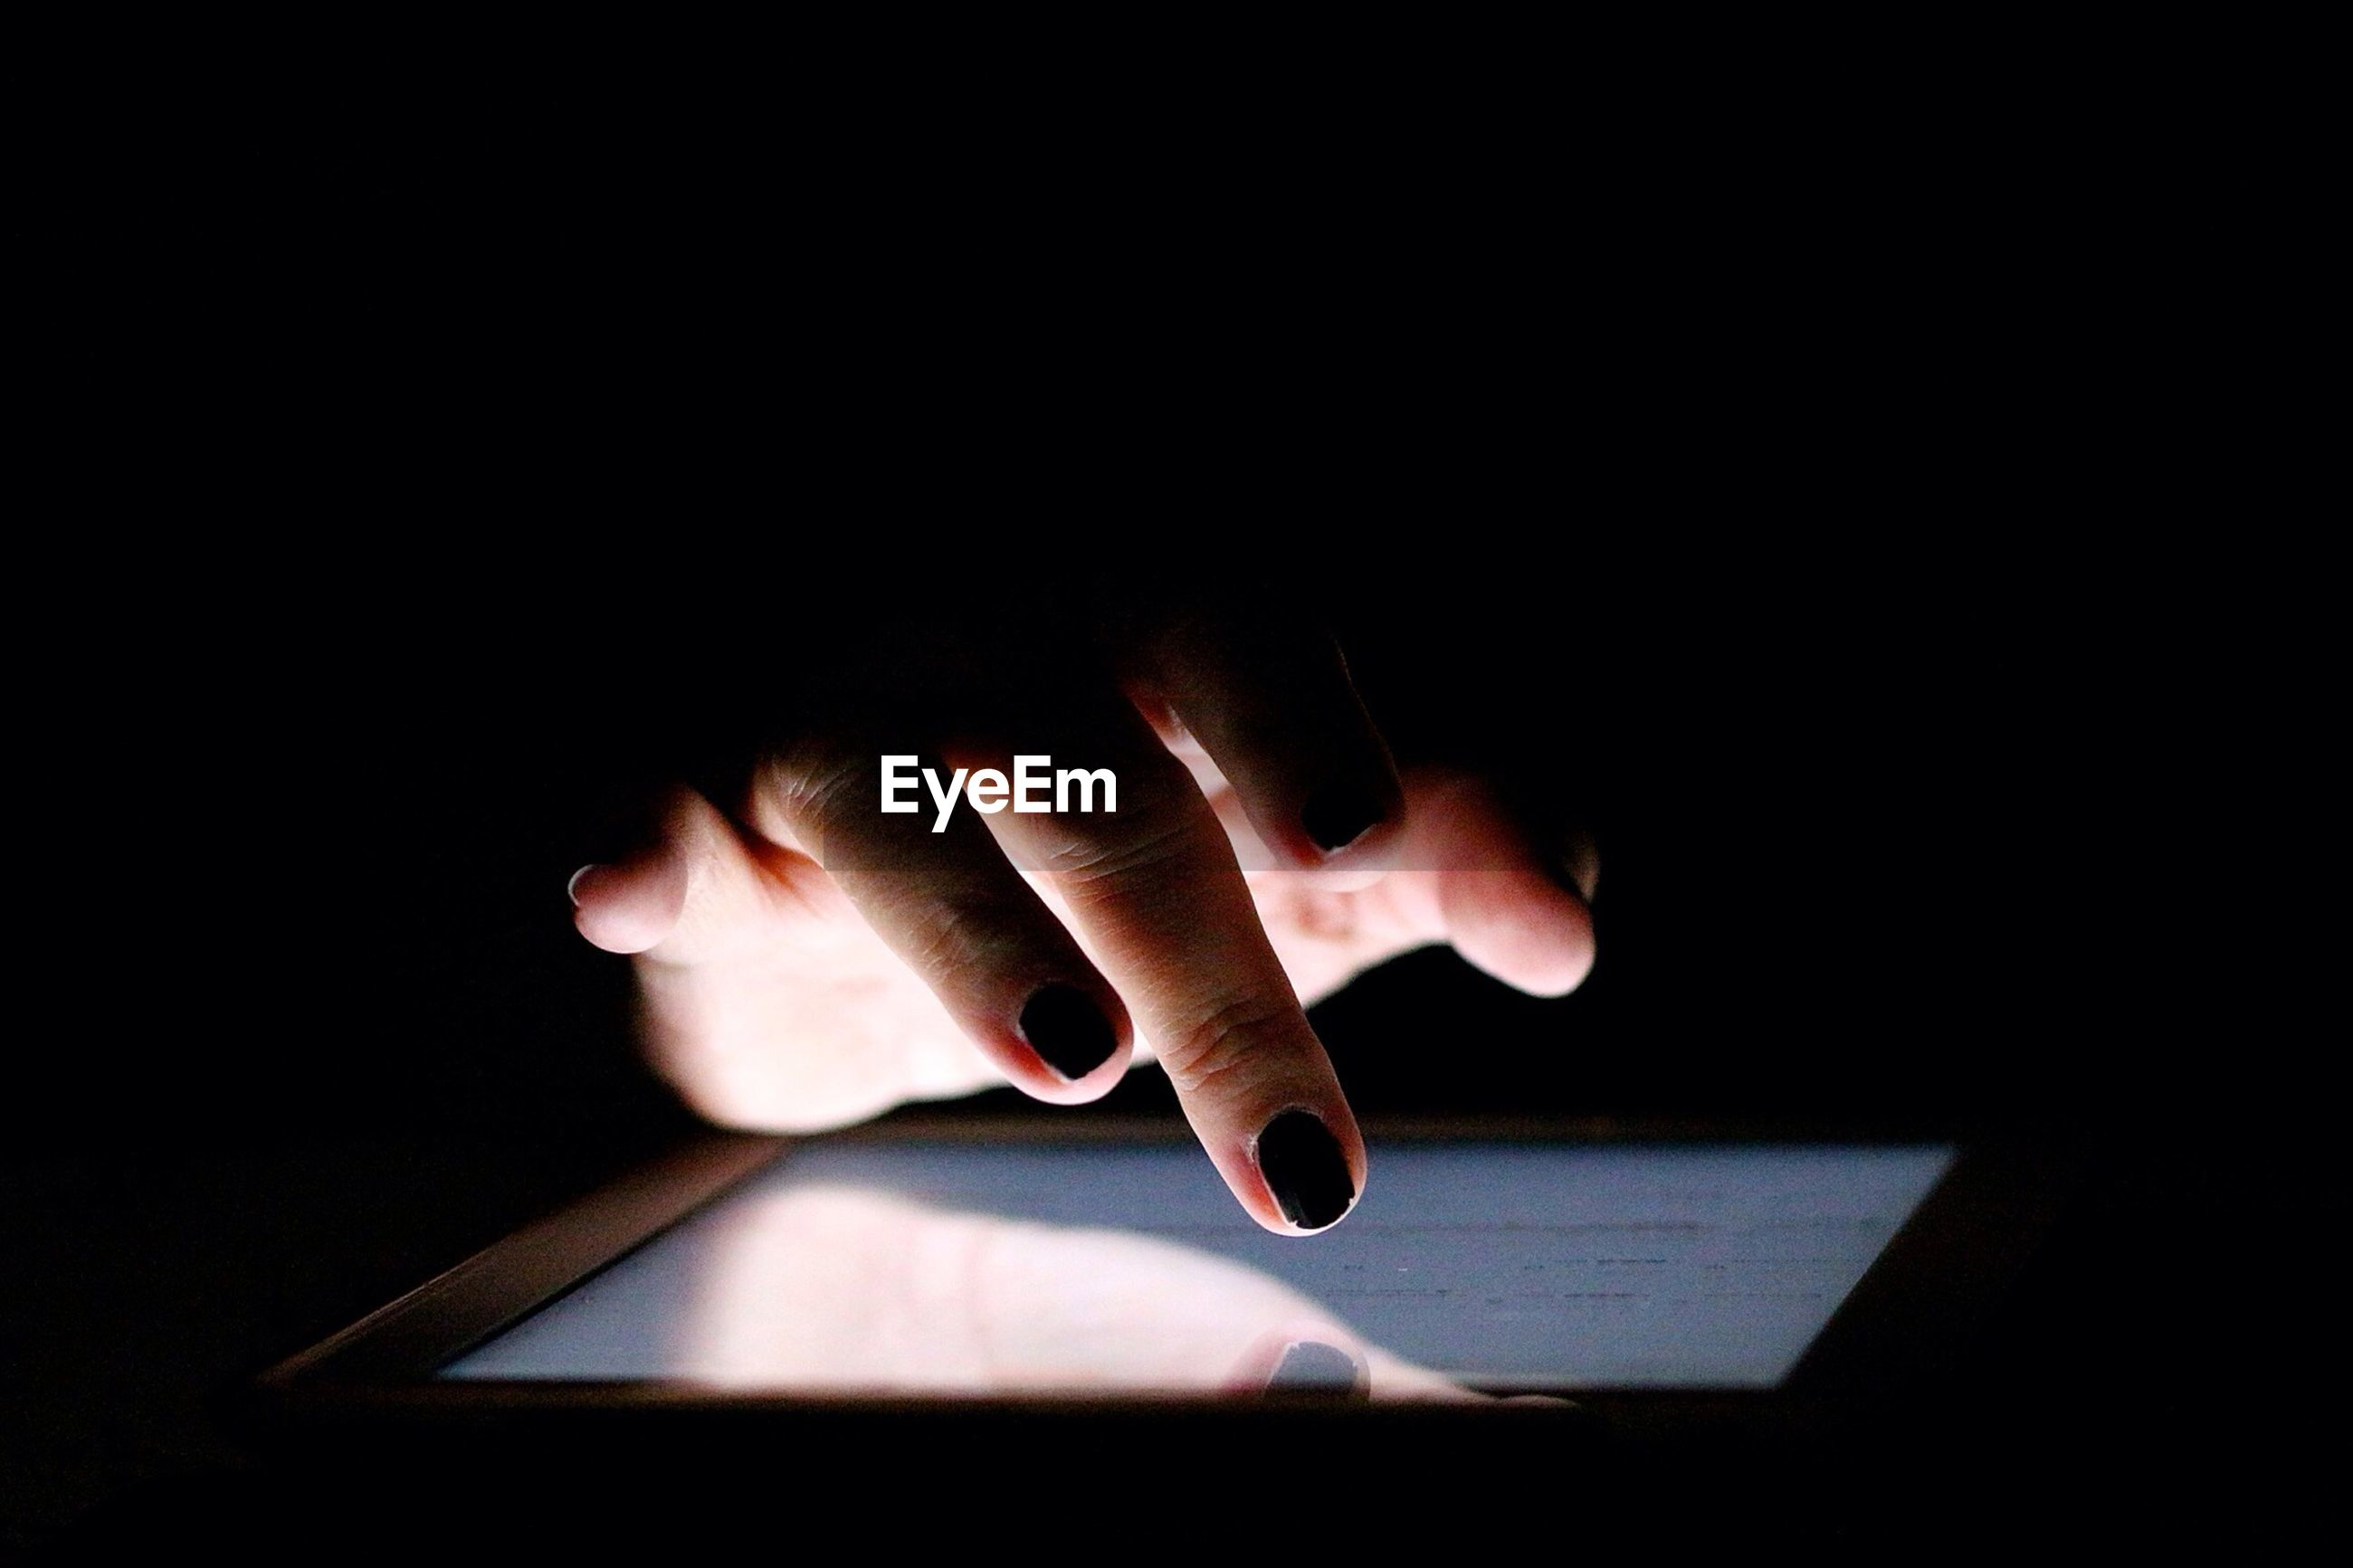 Cropped image of female hand touching digital tablet over black background